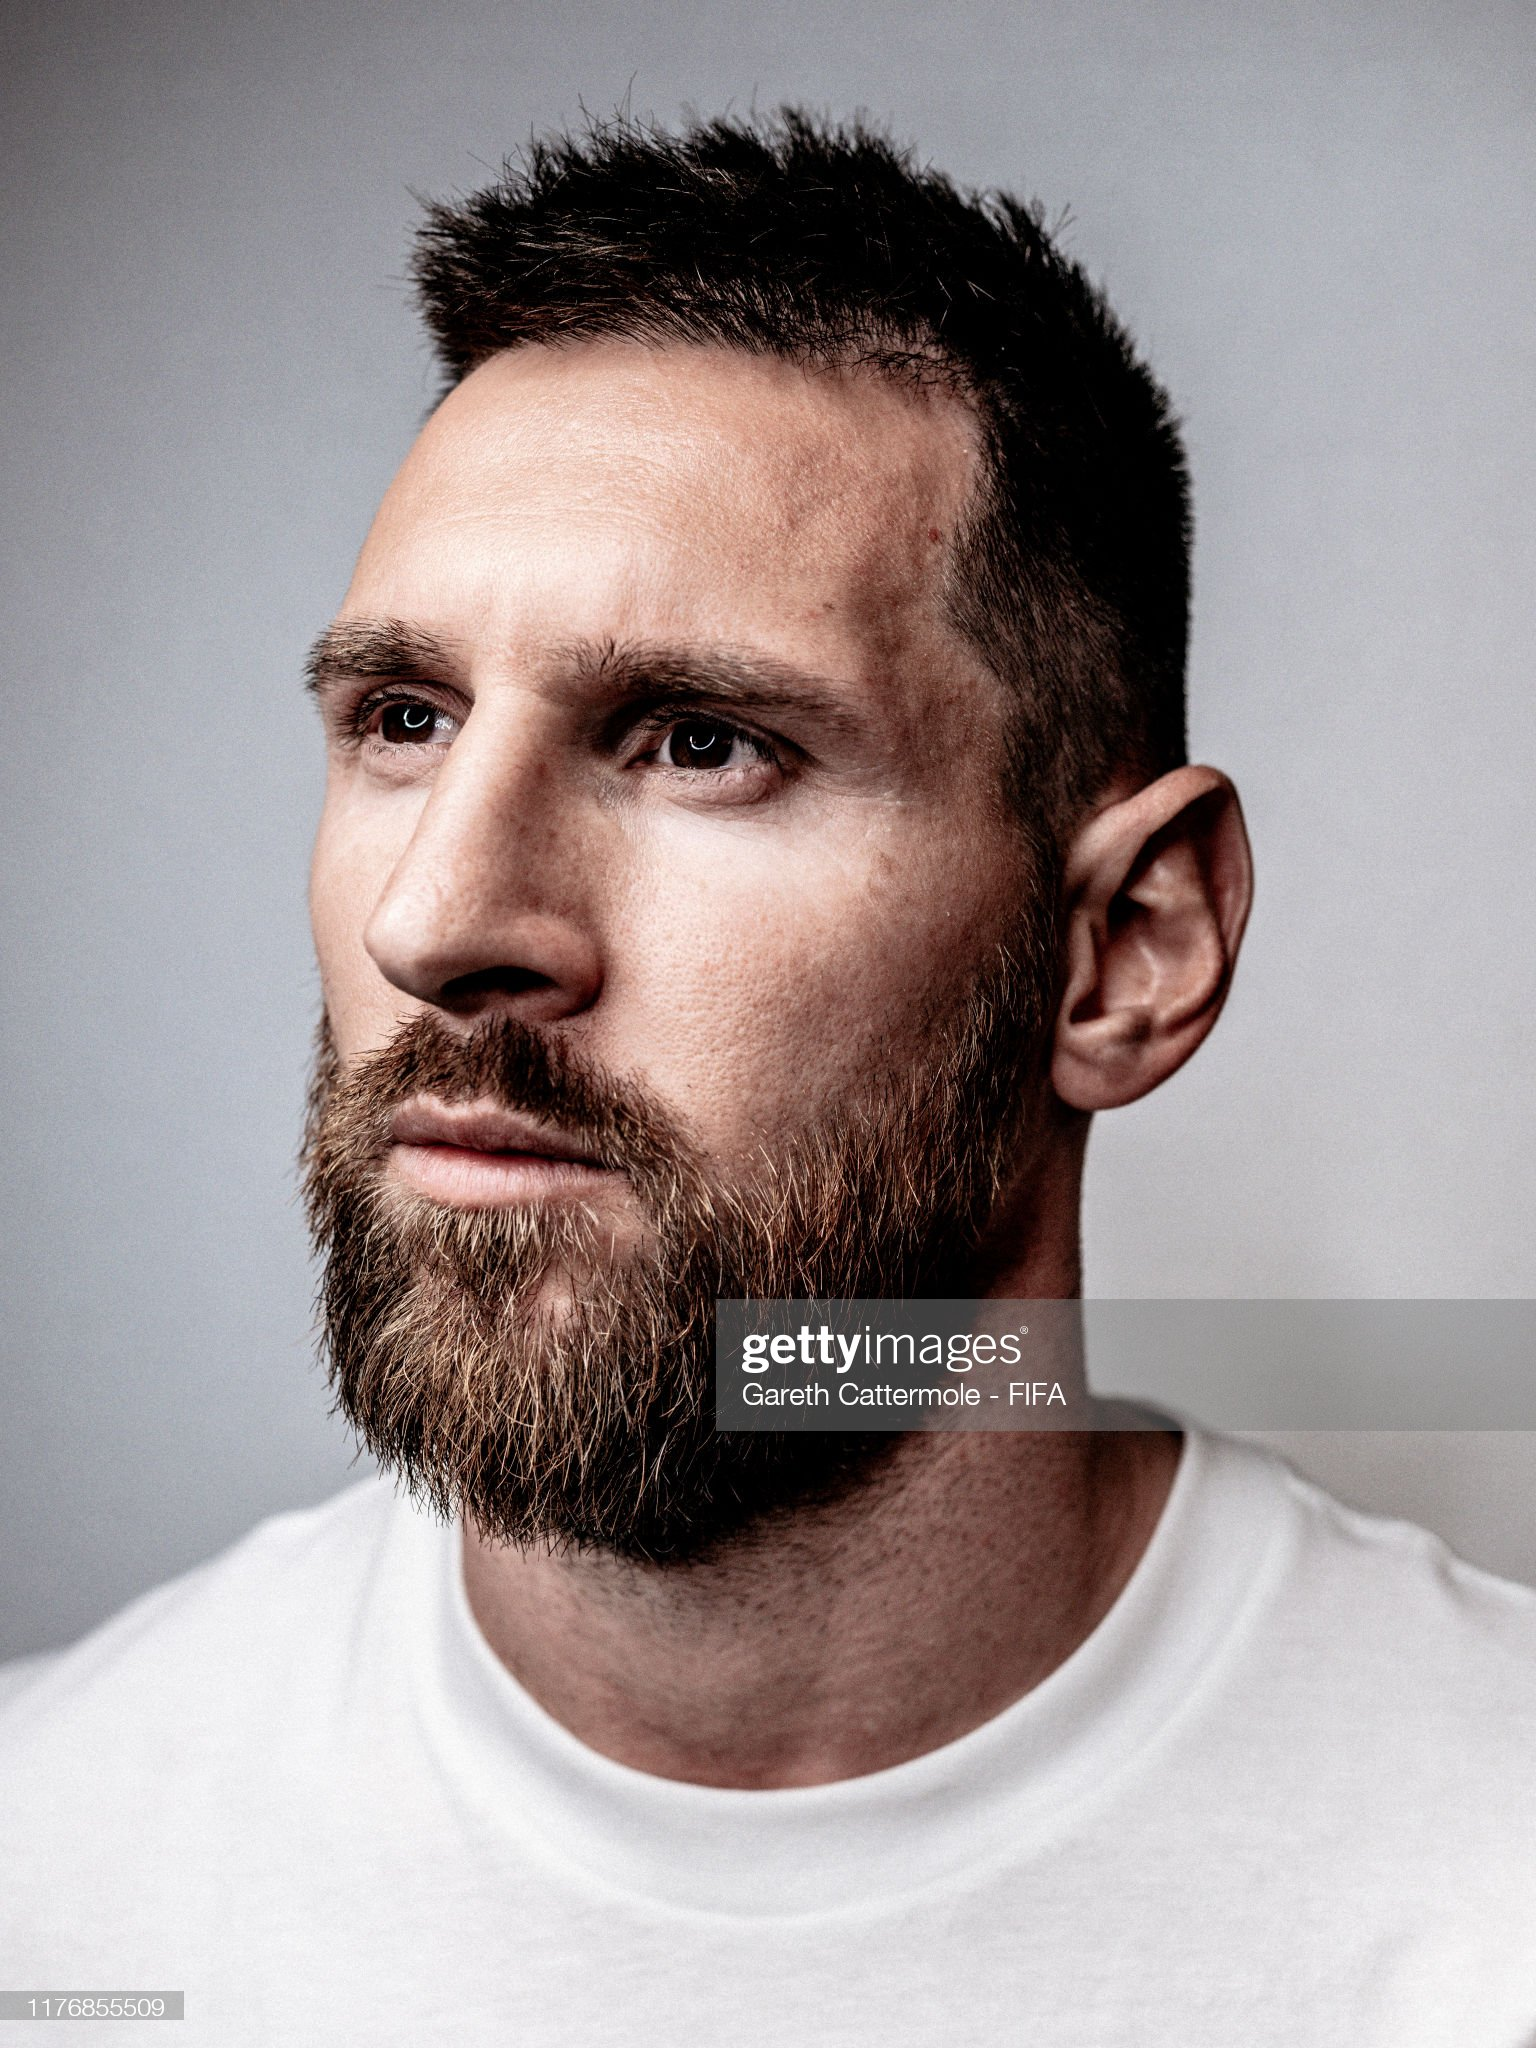 The Best FIFA Football Awards 2019 Lionel-messi-of-fc-barcelona-and-argentina-poses-for-a-portrait-ahead-picture-id1176855509?s=2048x2048